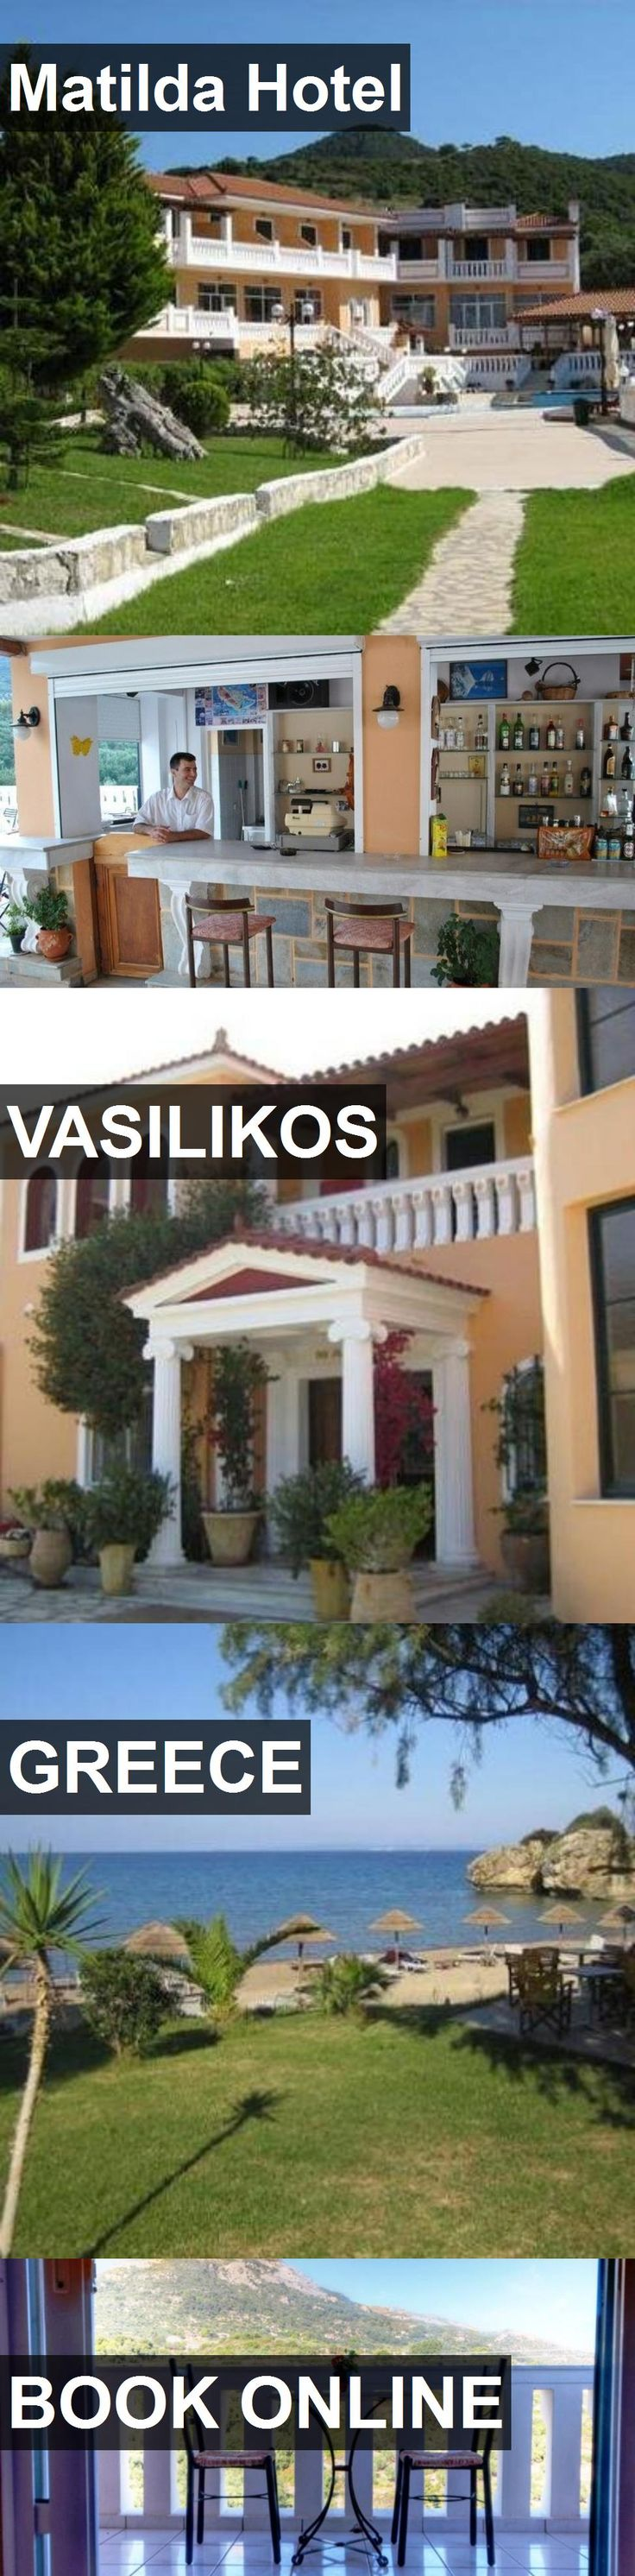 Matilda Hotel in Vasilikos, Greece. For more information, photos, reviews and best prices please follow the link. #Greece #Vasilikos #travel #vacation #hotel